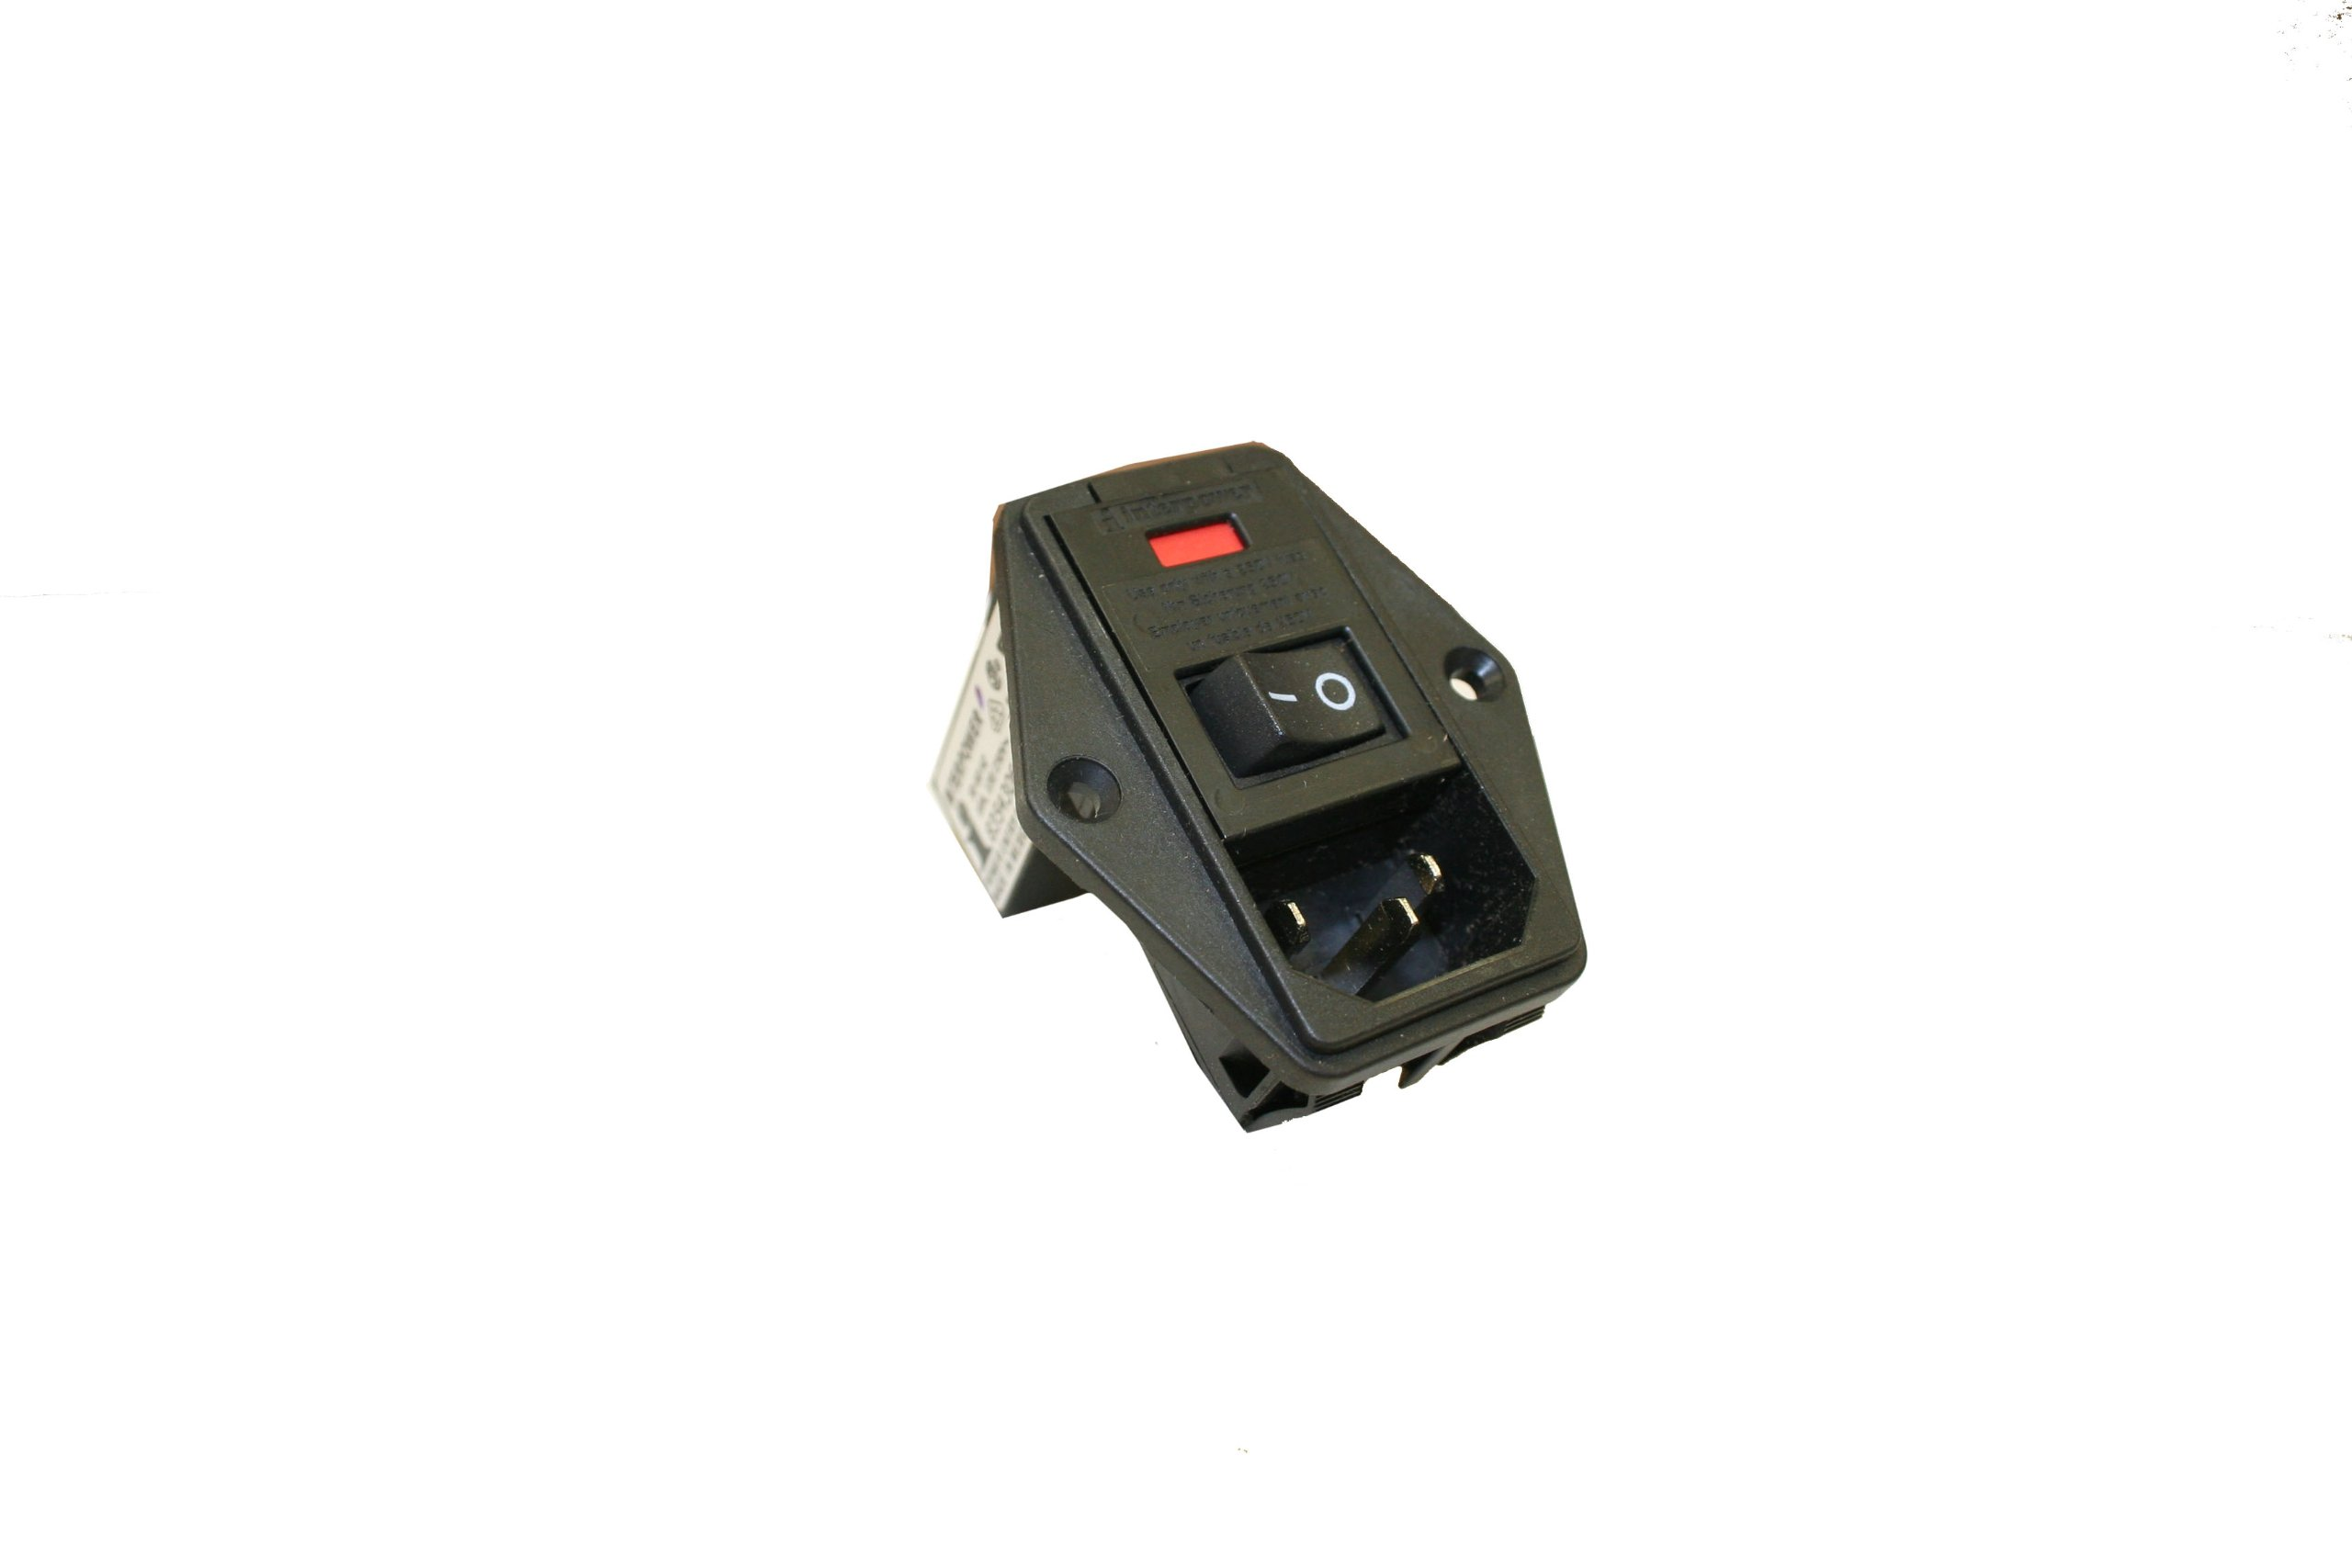 Interpower 83543060 Three Function Double Fused Power Entry Module, C14 Inlet, Switch, Double Fused, 10A Current Rating, 120/250VAC Voltage Rating